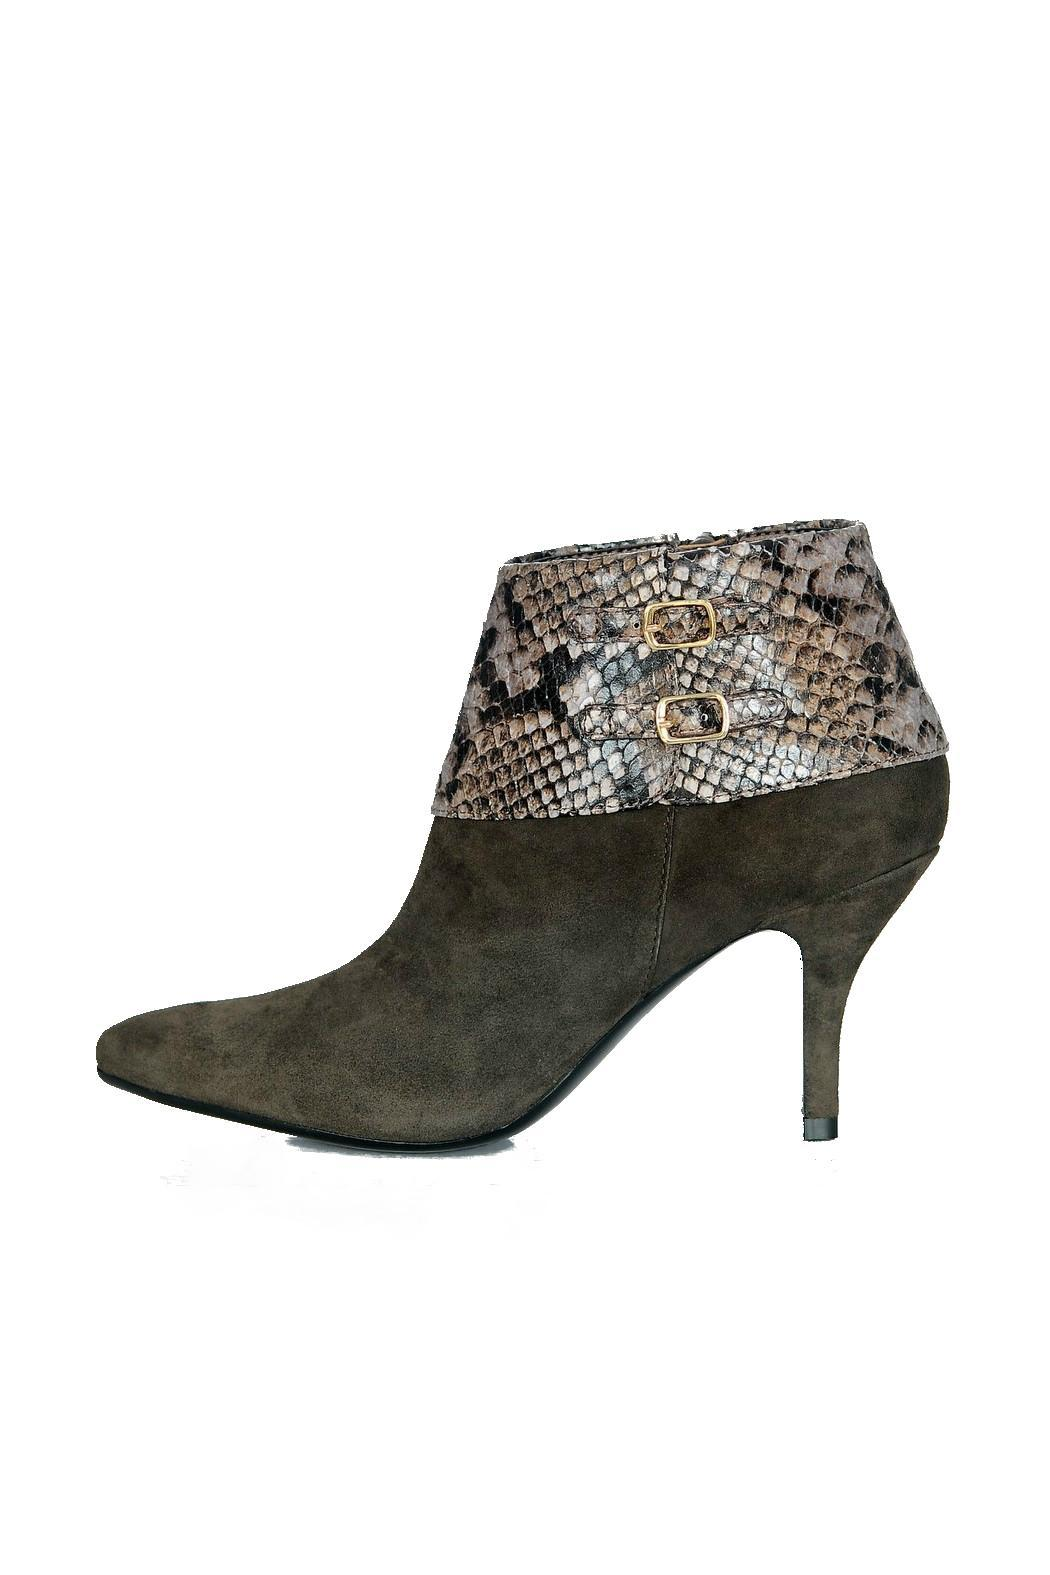 vaneli high heel bootie from florida by shoes by beverly